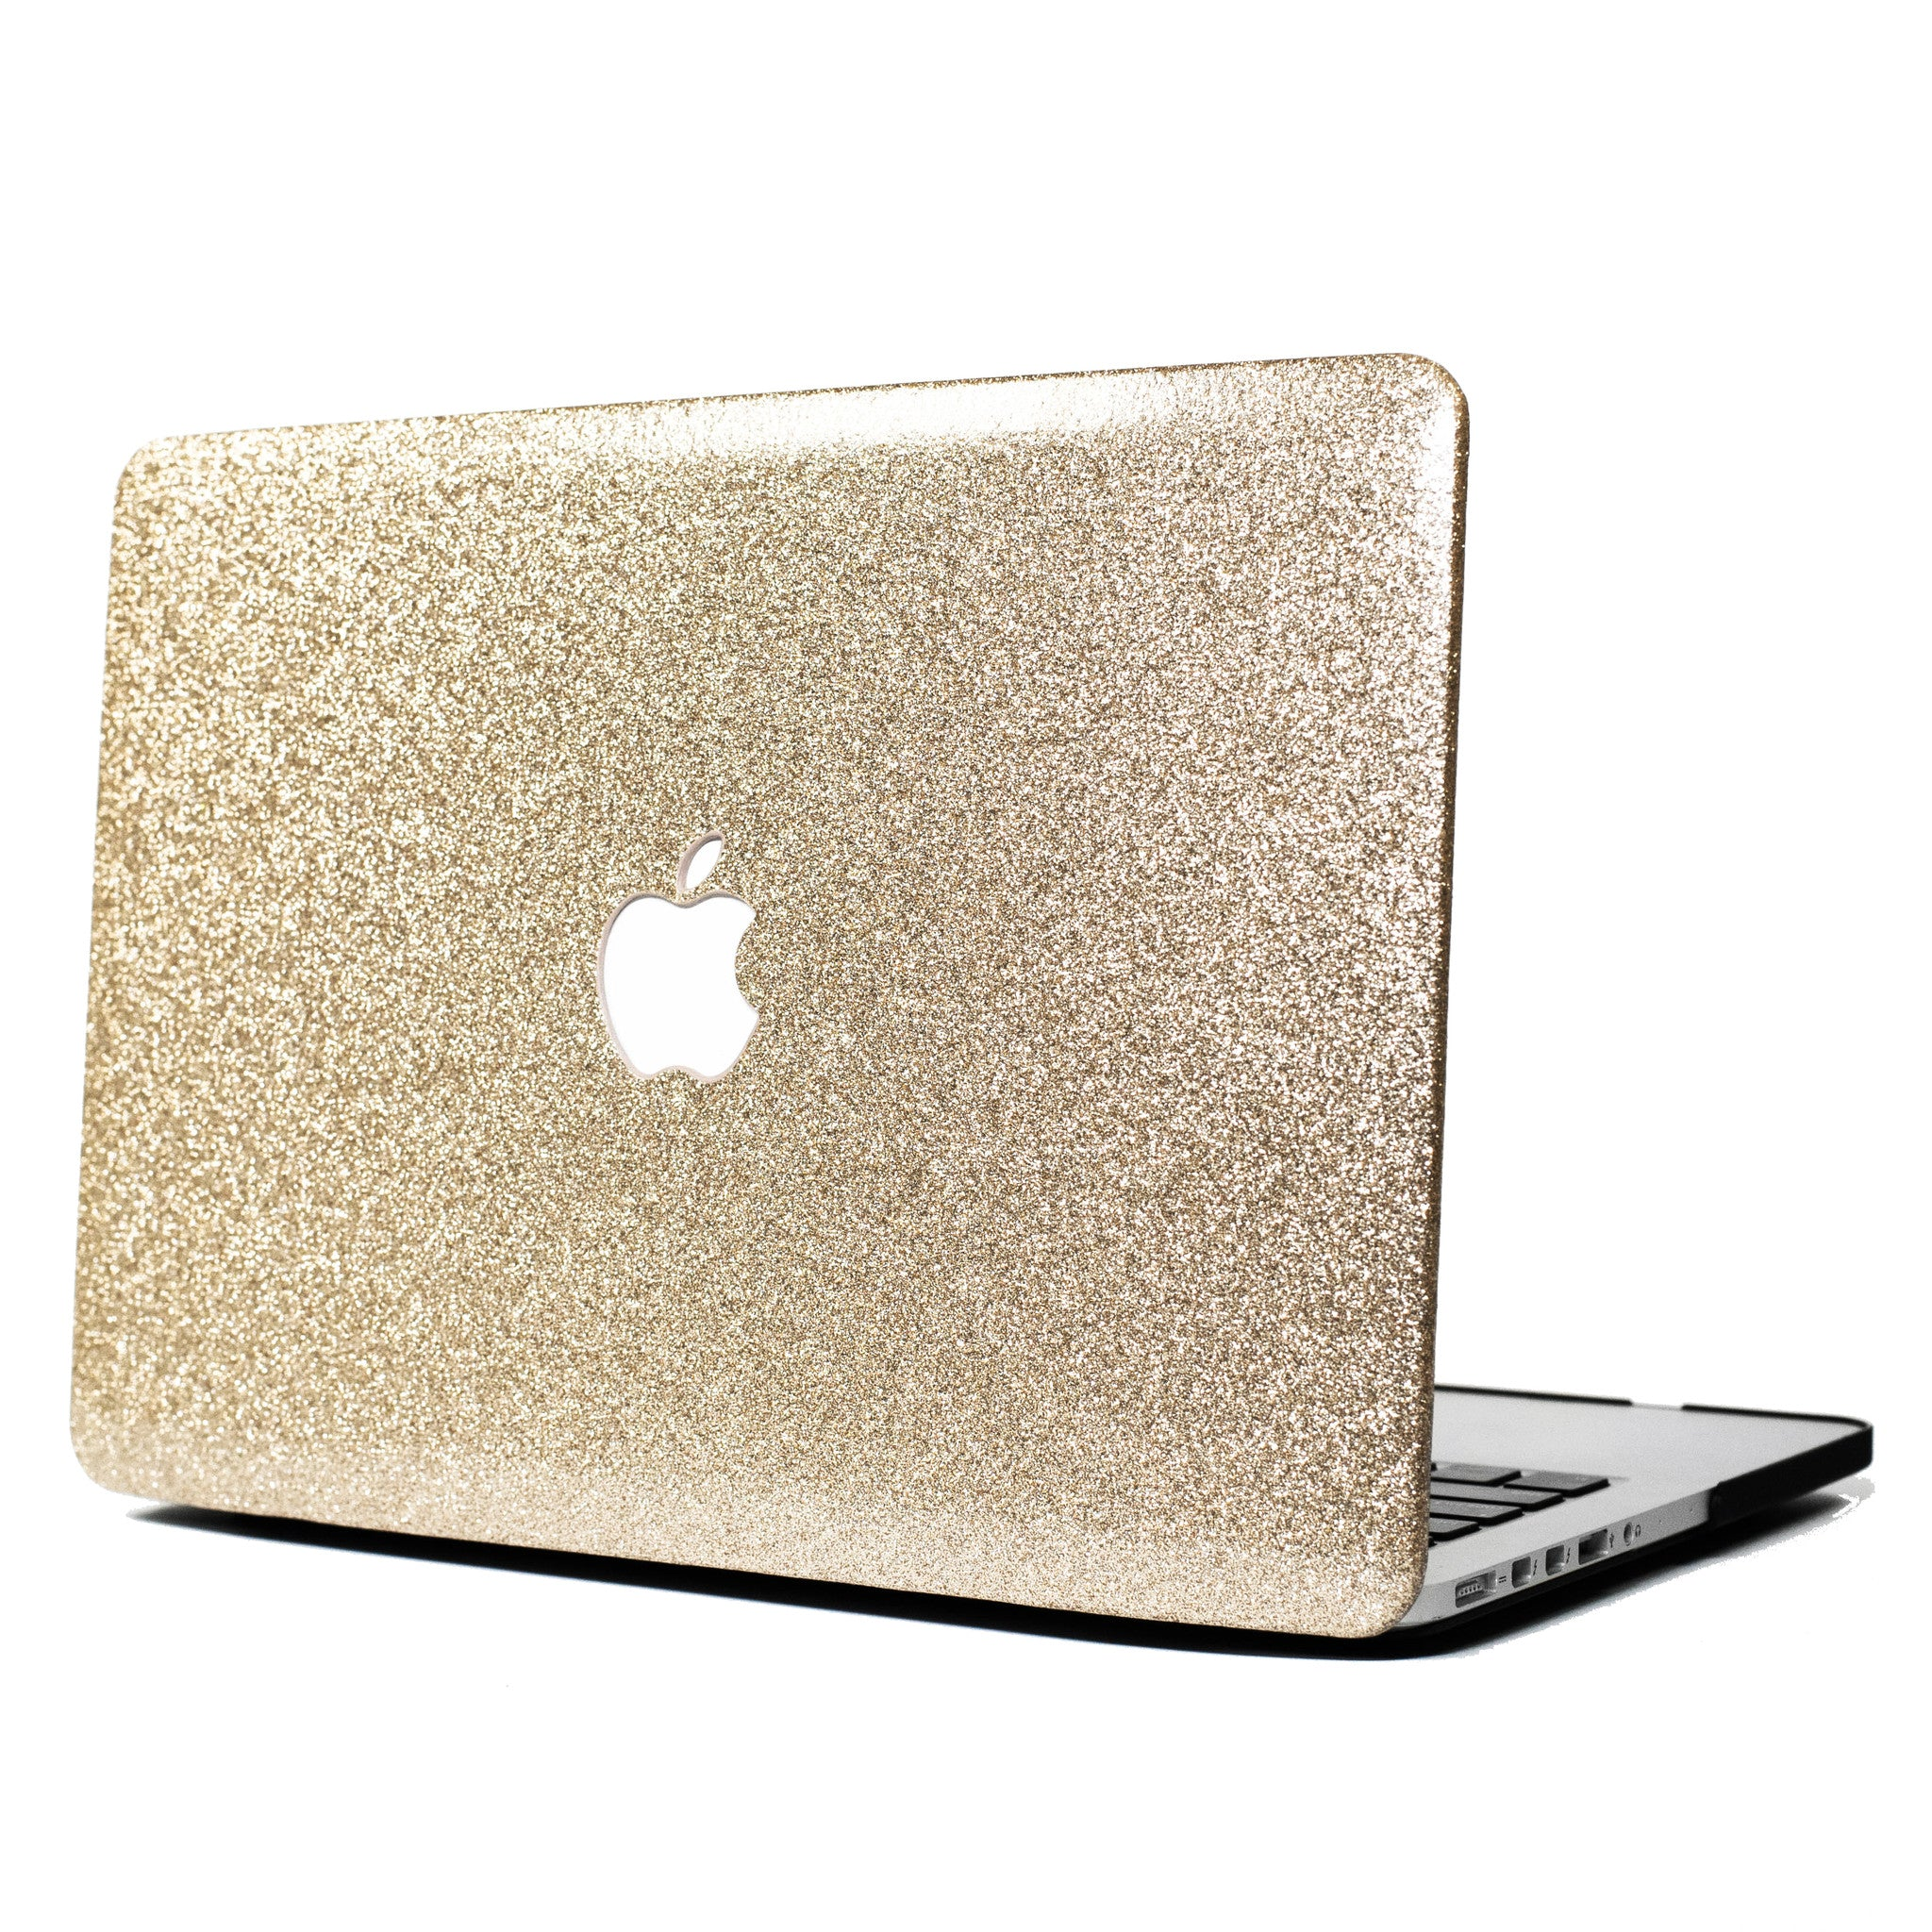 Champagne Gold Macbook Bundle | Embrishop.com